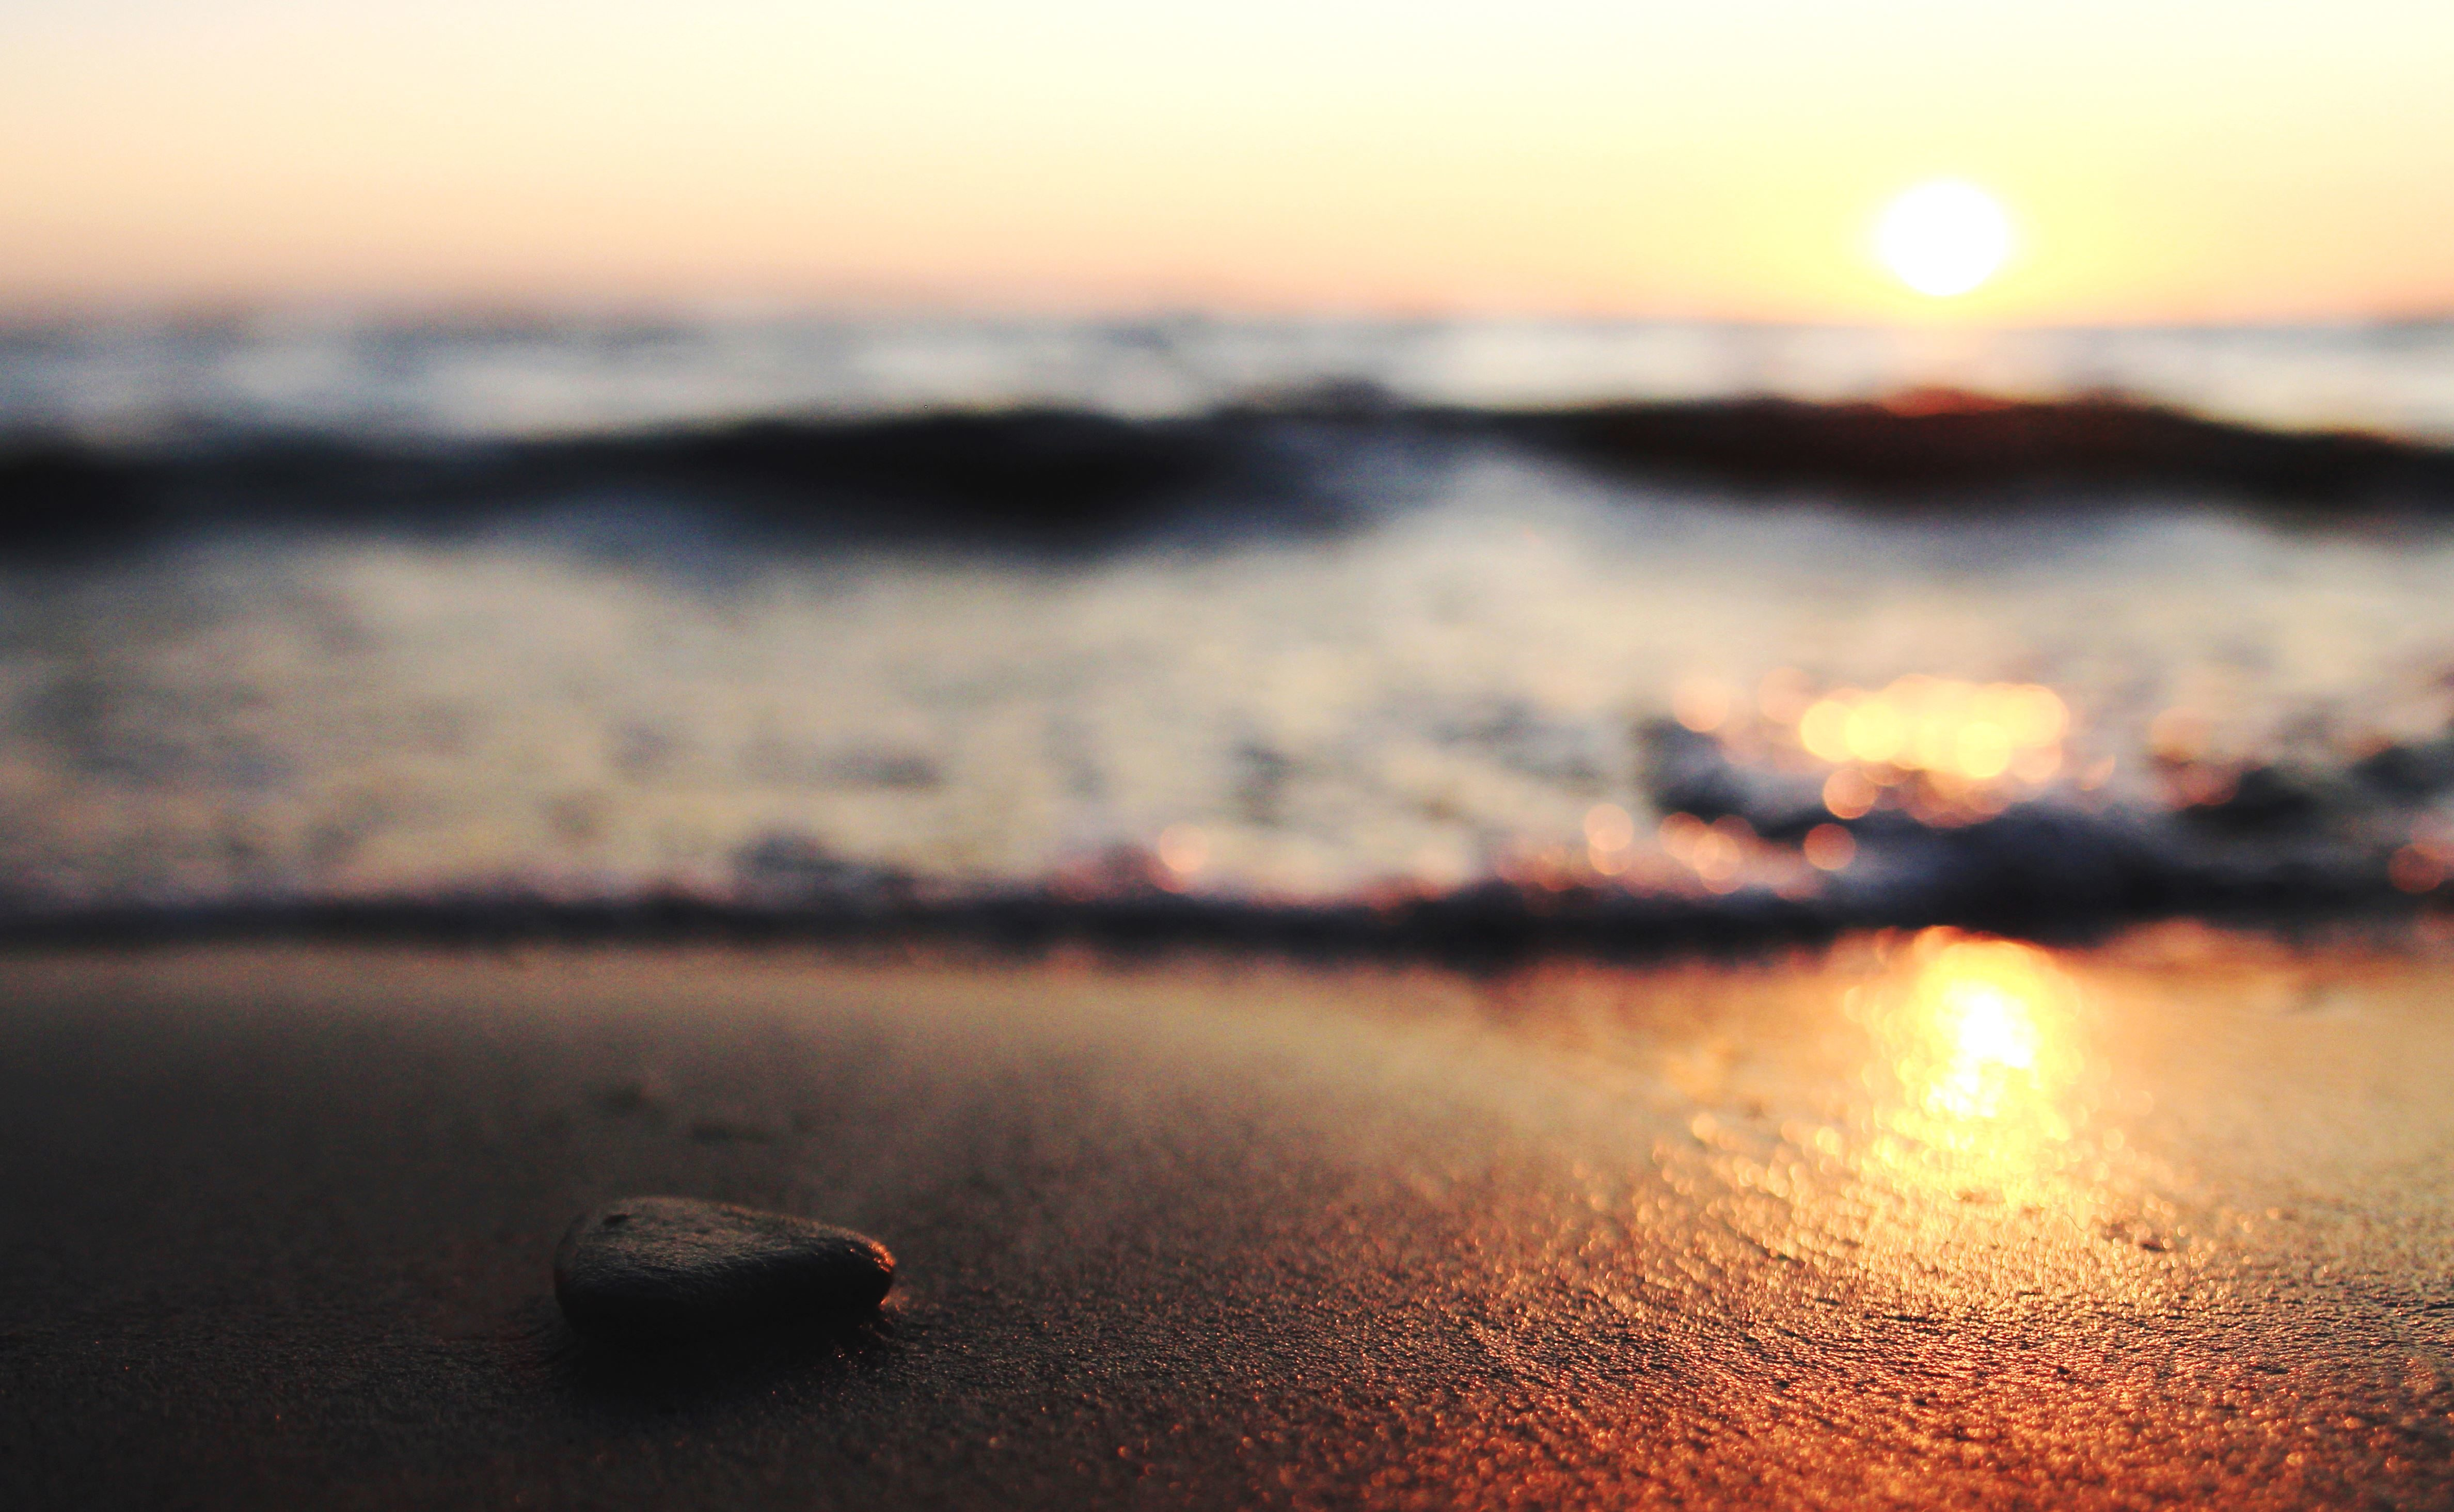 free picture stone  sun  sunset  water  waves  pebble  reflection  rock canon eos 60d manual download canon eos 60d manual book